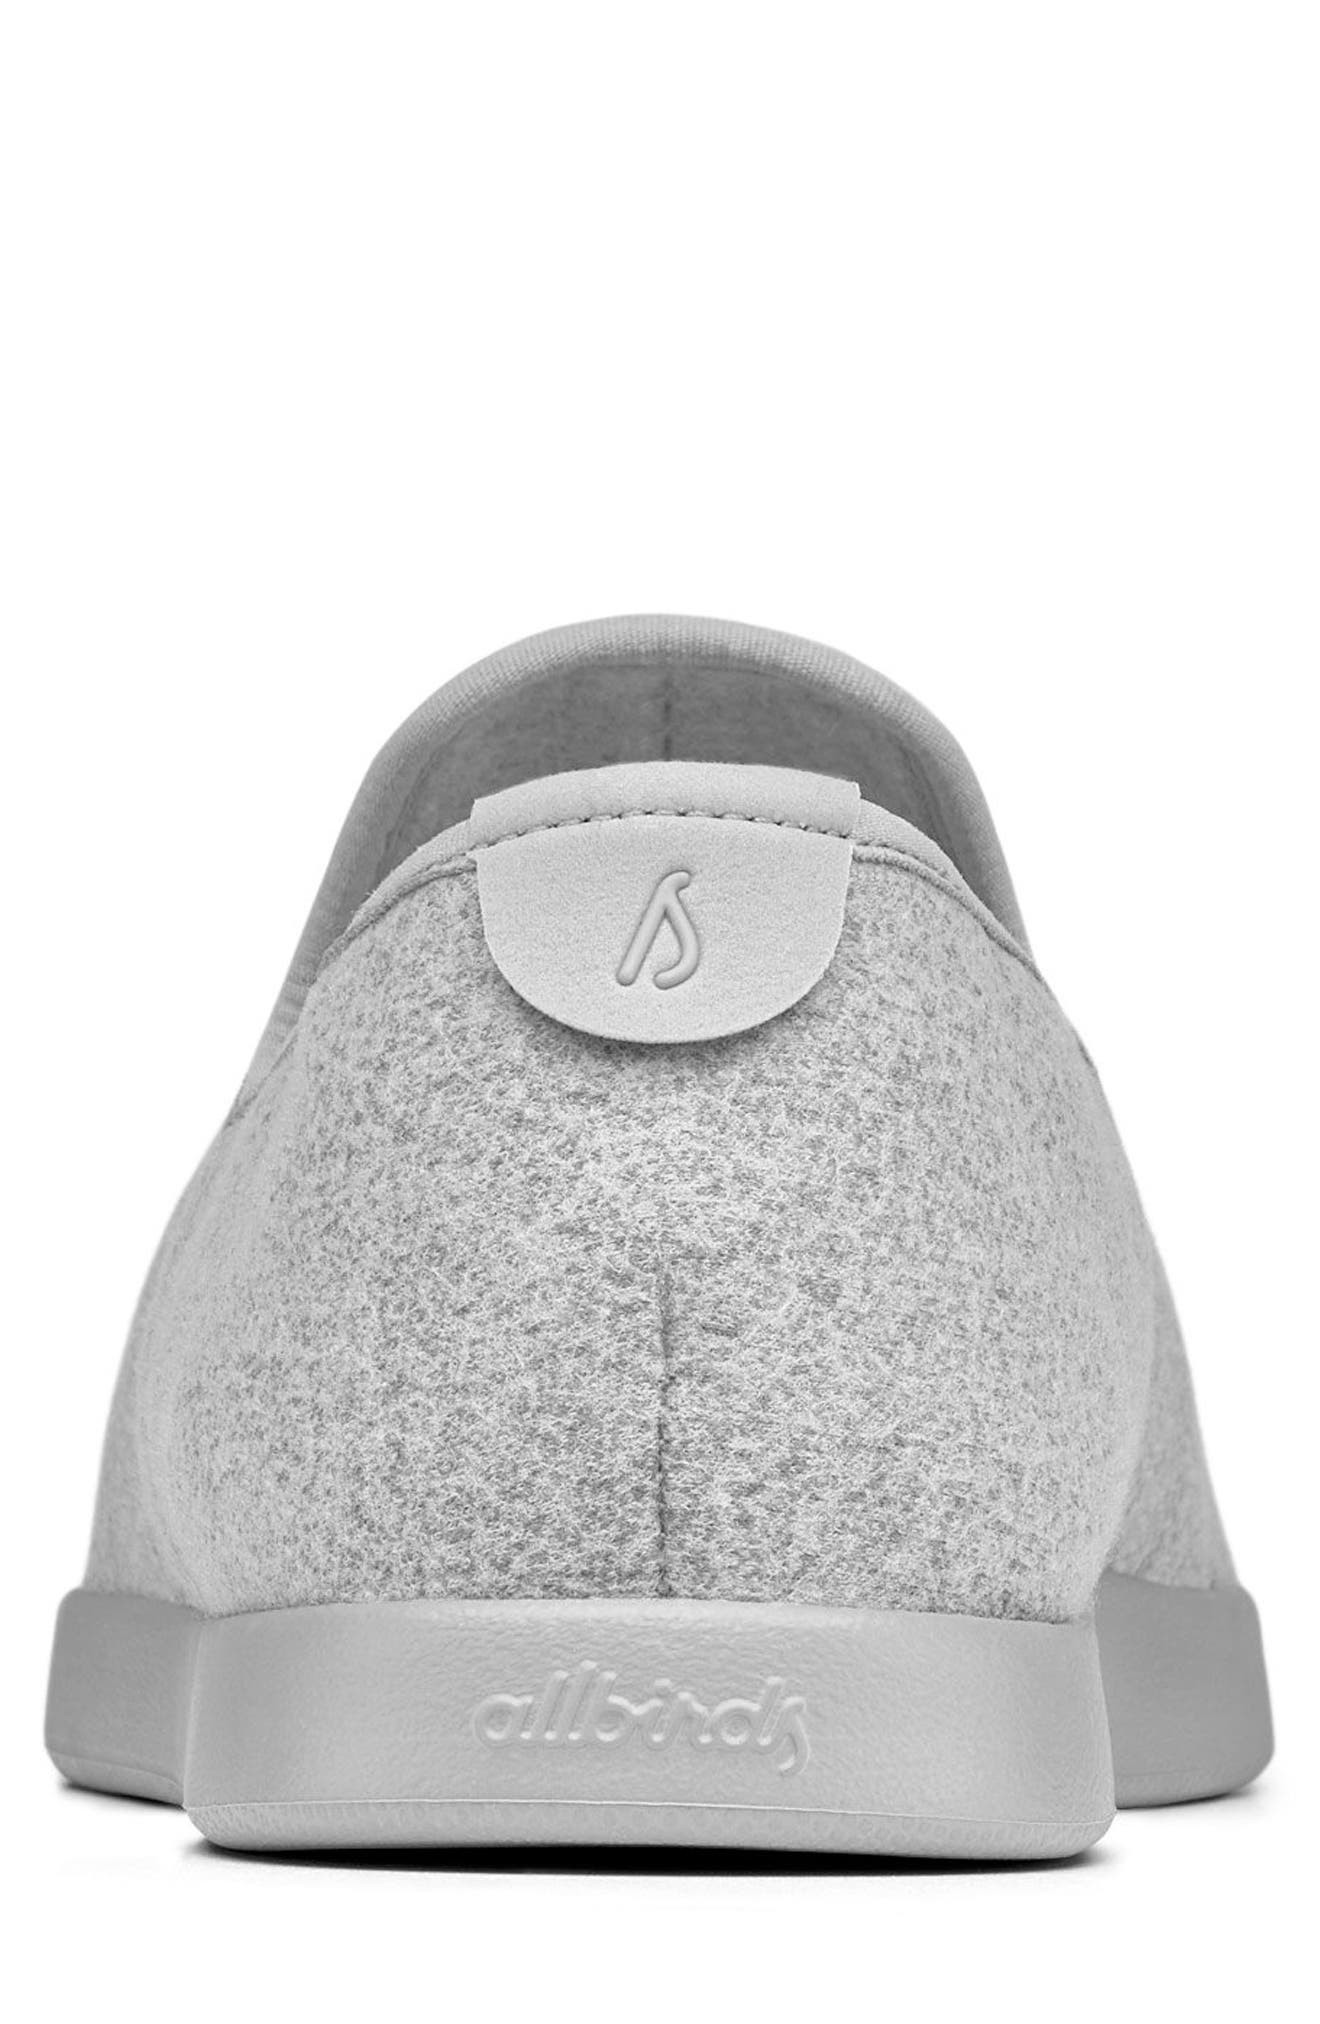 Wool Lounger,                             Alternate thumbnail 3, color,                             Sf Grey